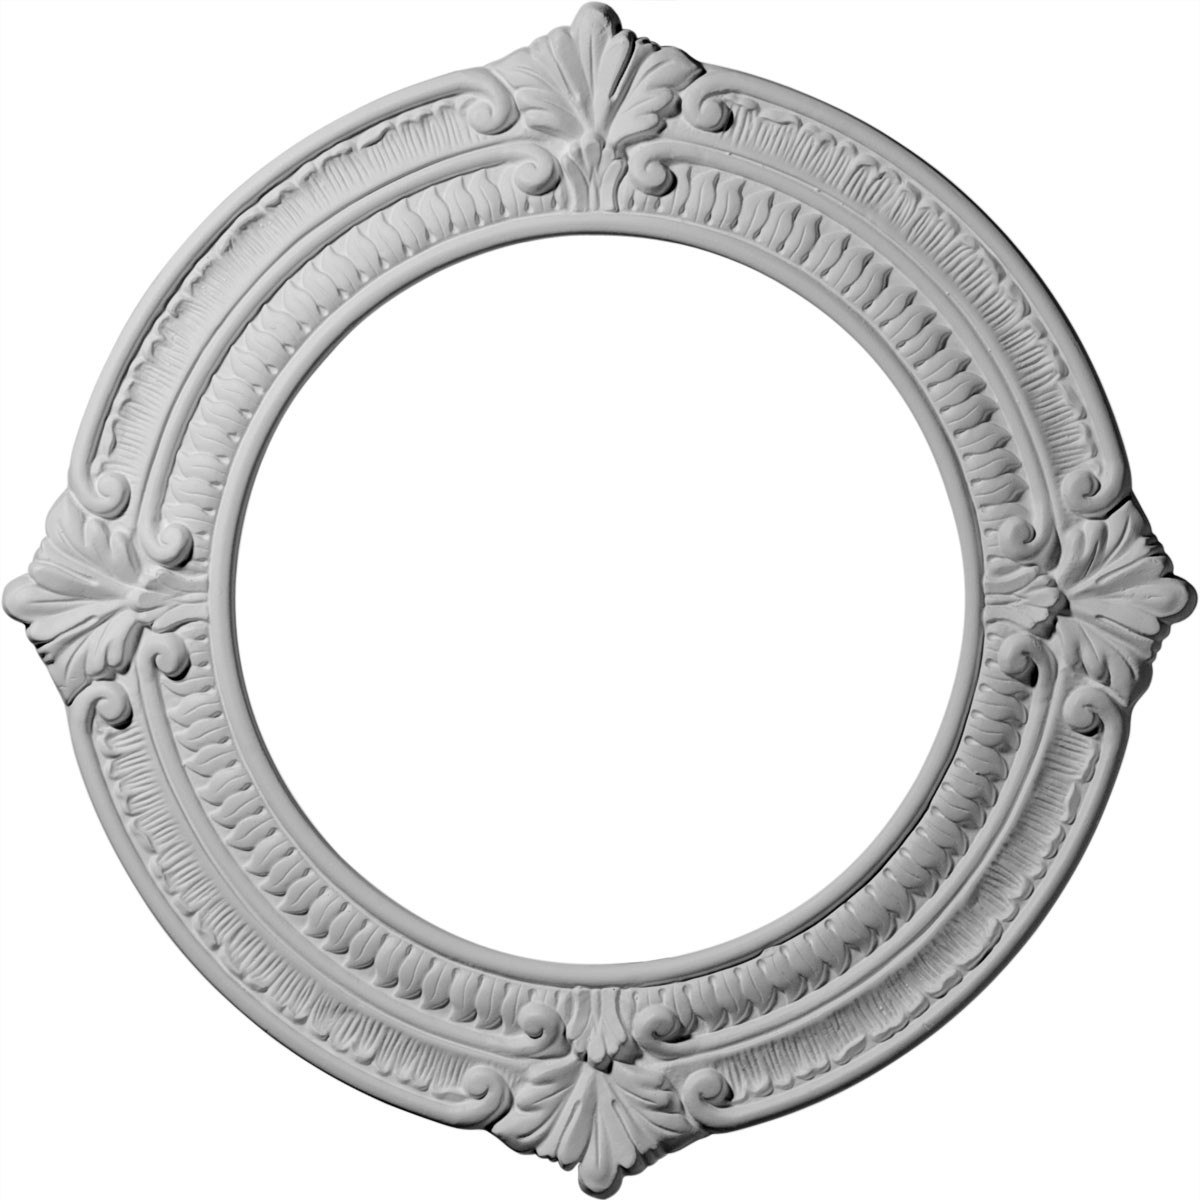 """EM-CM13BN - 13 1/8""""OD x 8""""ID x 5/8""""P Benson Ceiling Medallion (Fits Canopies up to 8"""")"""